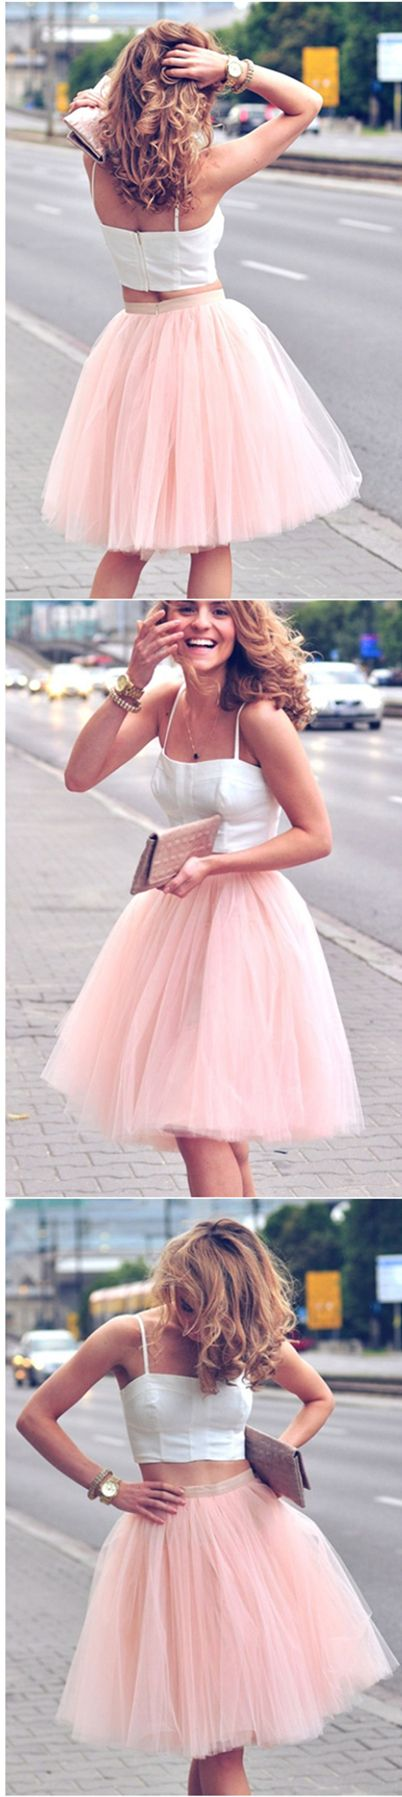 Two-Piece A-Line Spaghetti Straps Short Pink Tulle Homecoming Dress @veenrol two piece homecoming dresses, 2 piece homecoming dresses, pink homecoming dresses